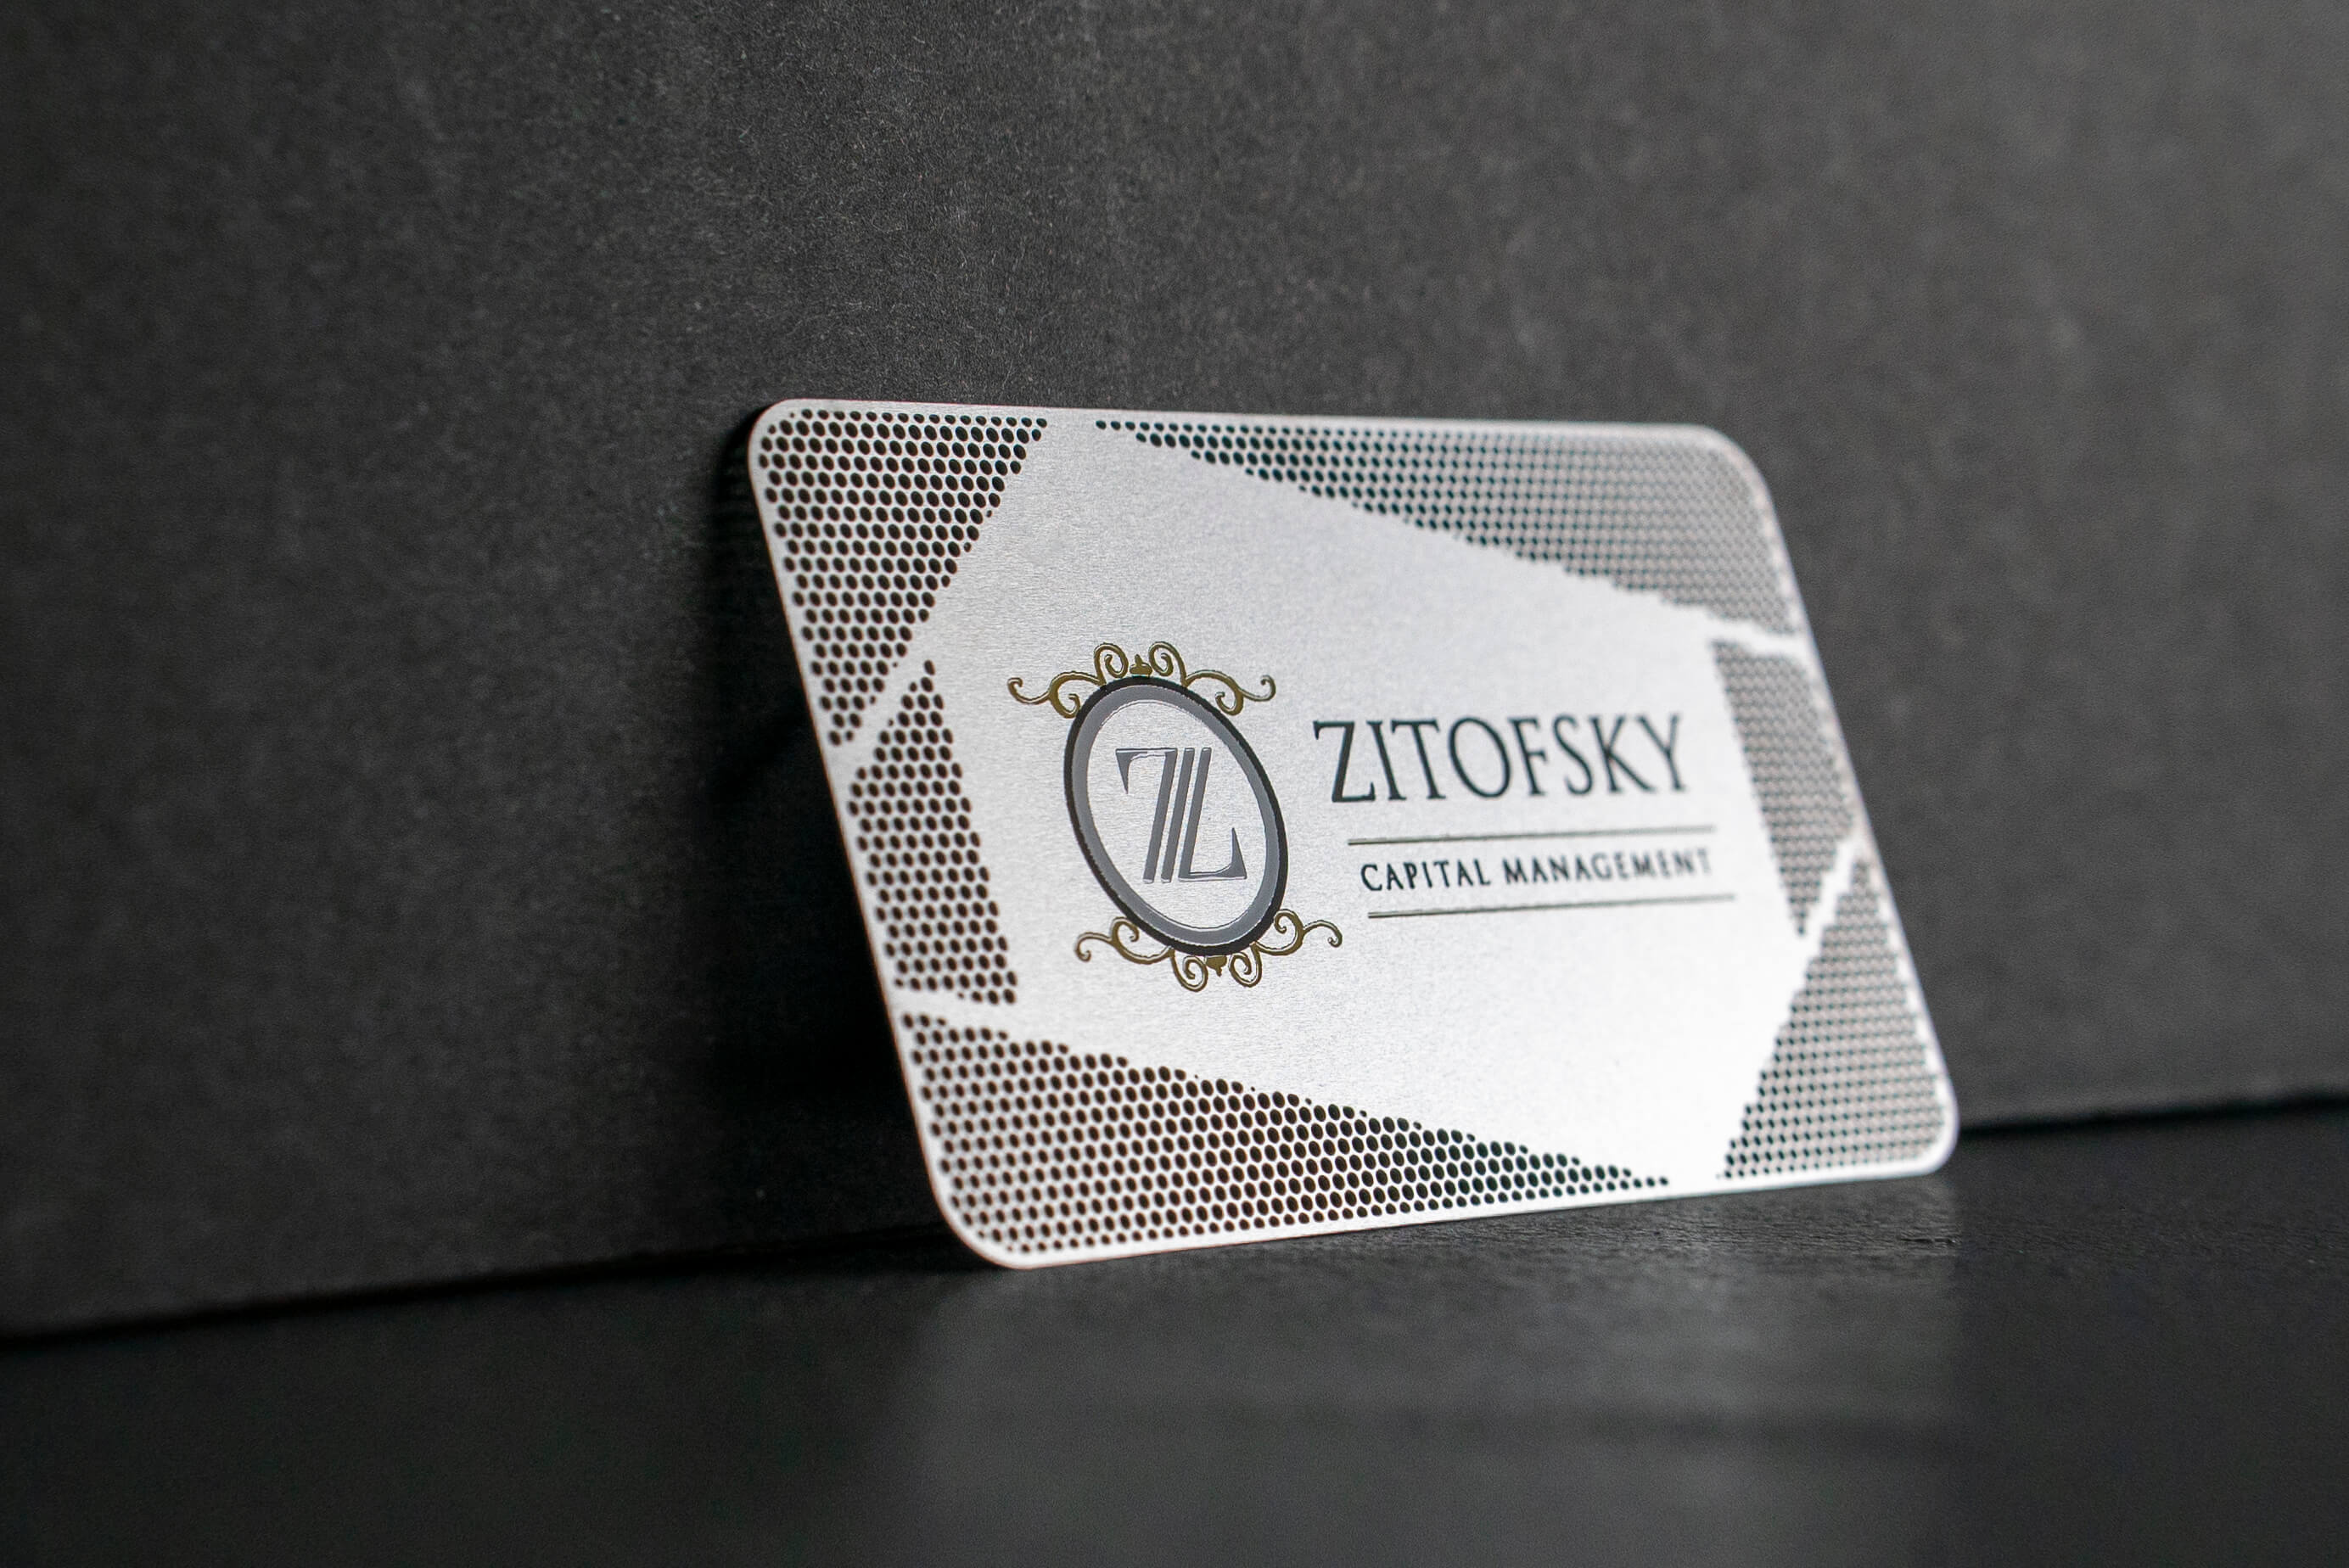 Capital Management Stainless Steel Metal Business Card